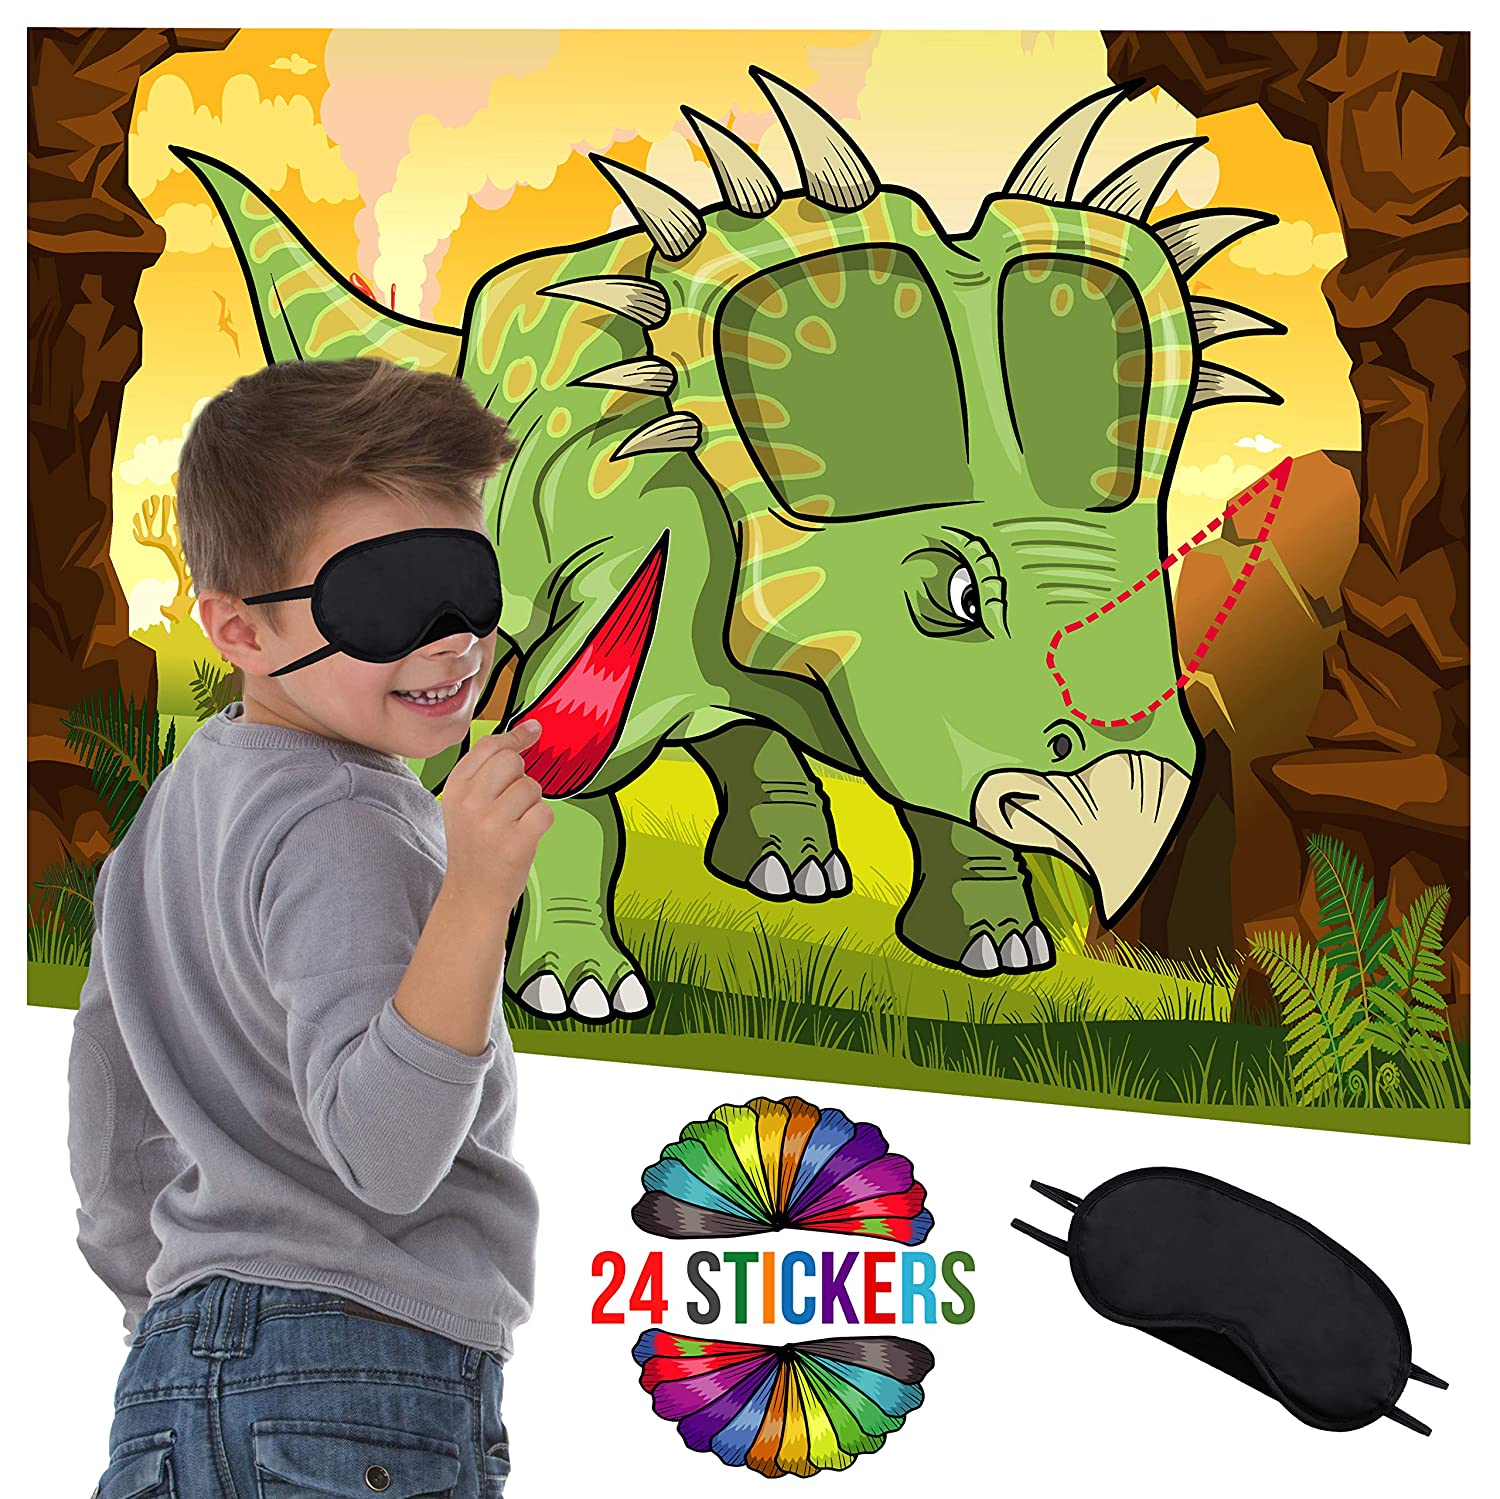 Dinosaur Party Supplies Birthday Decorations Fun Activities Birthday Games for Kids Party Pin The Horn On The Dinosaur Game Dino Poster 24 Sticker Horns Blindfold Mask Honey Duck